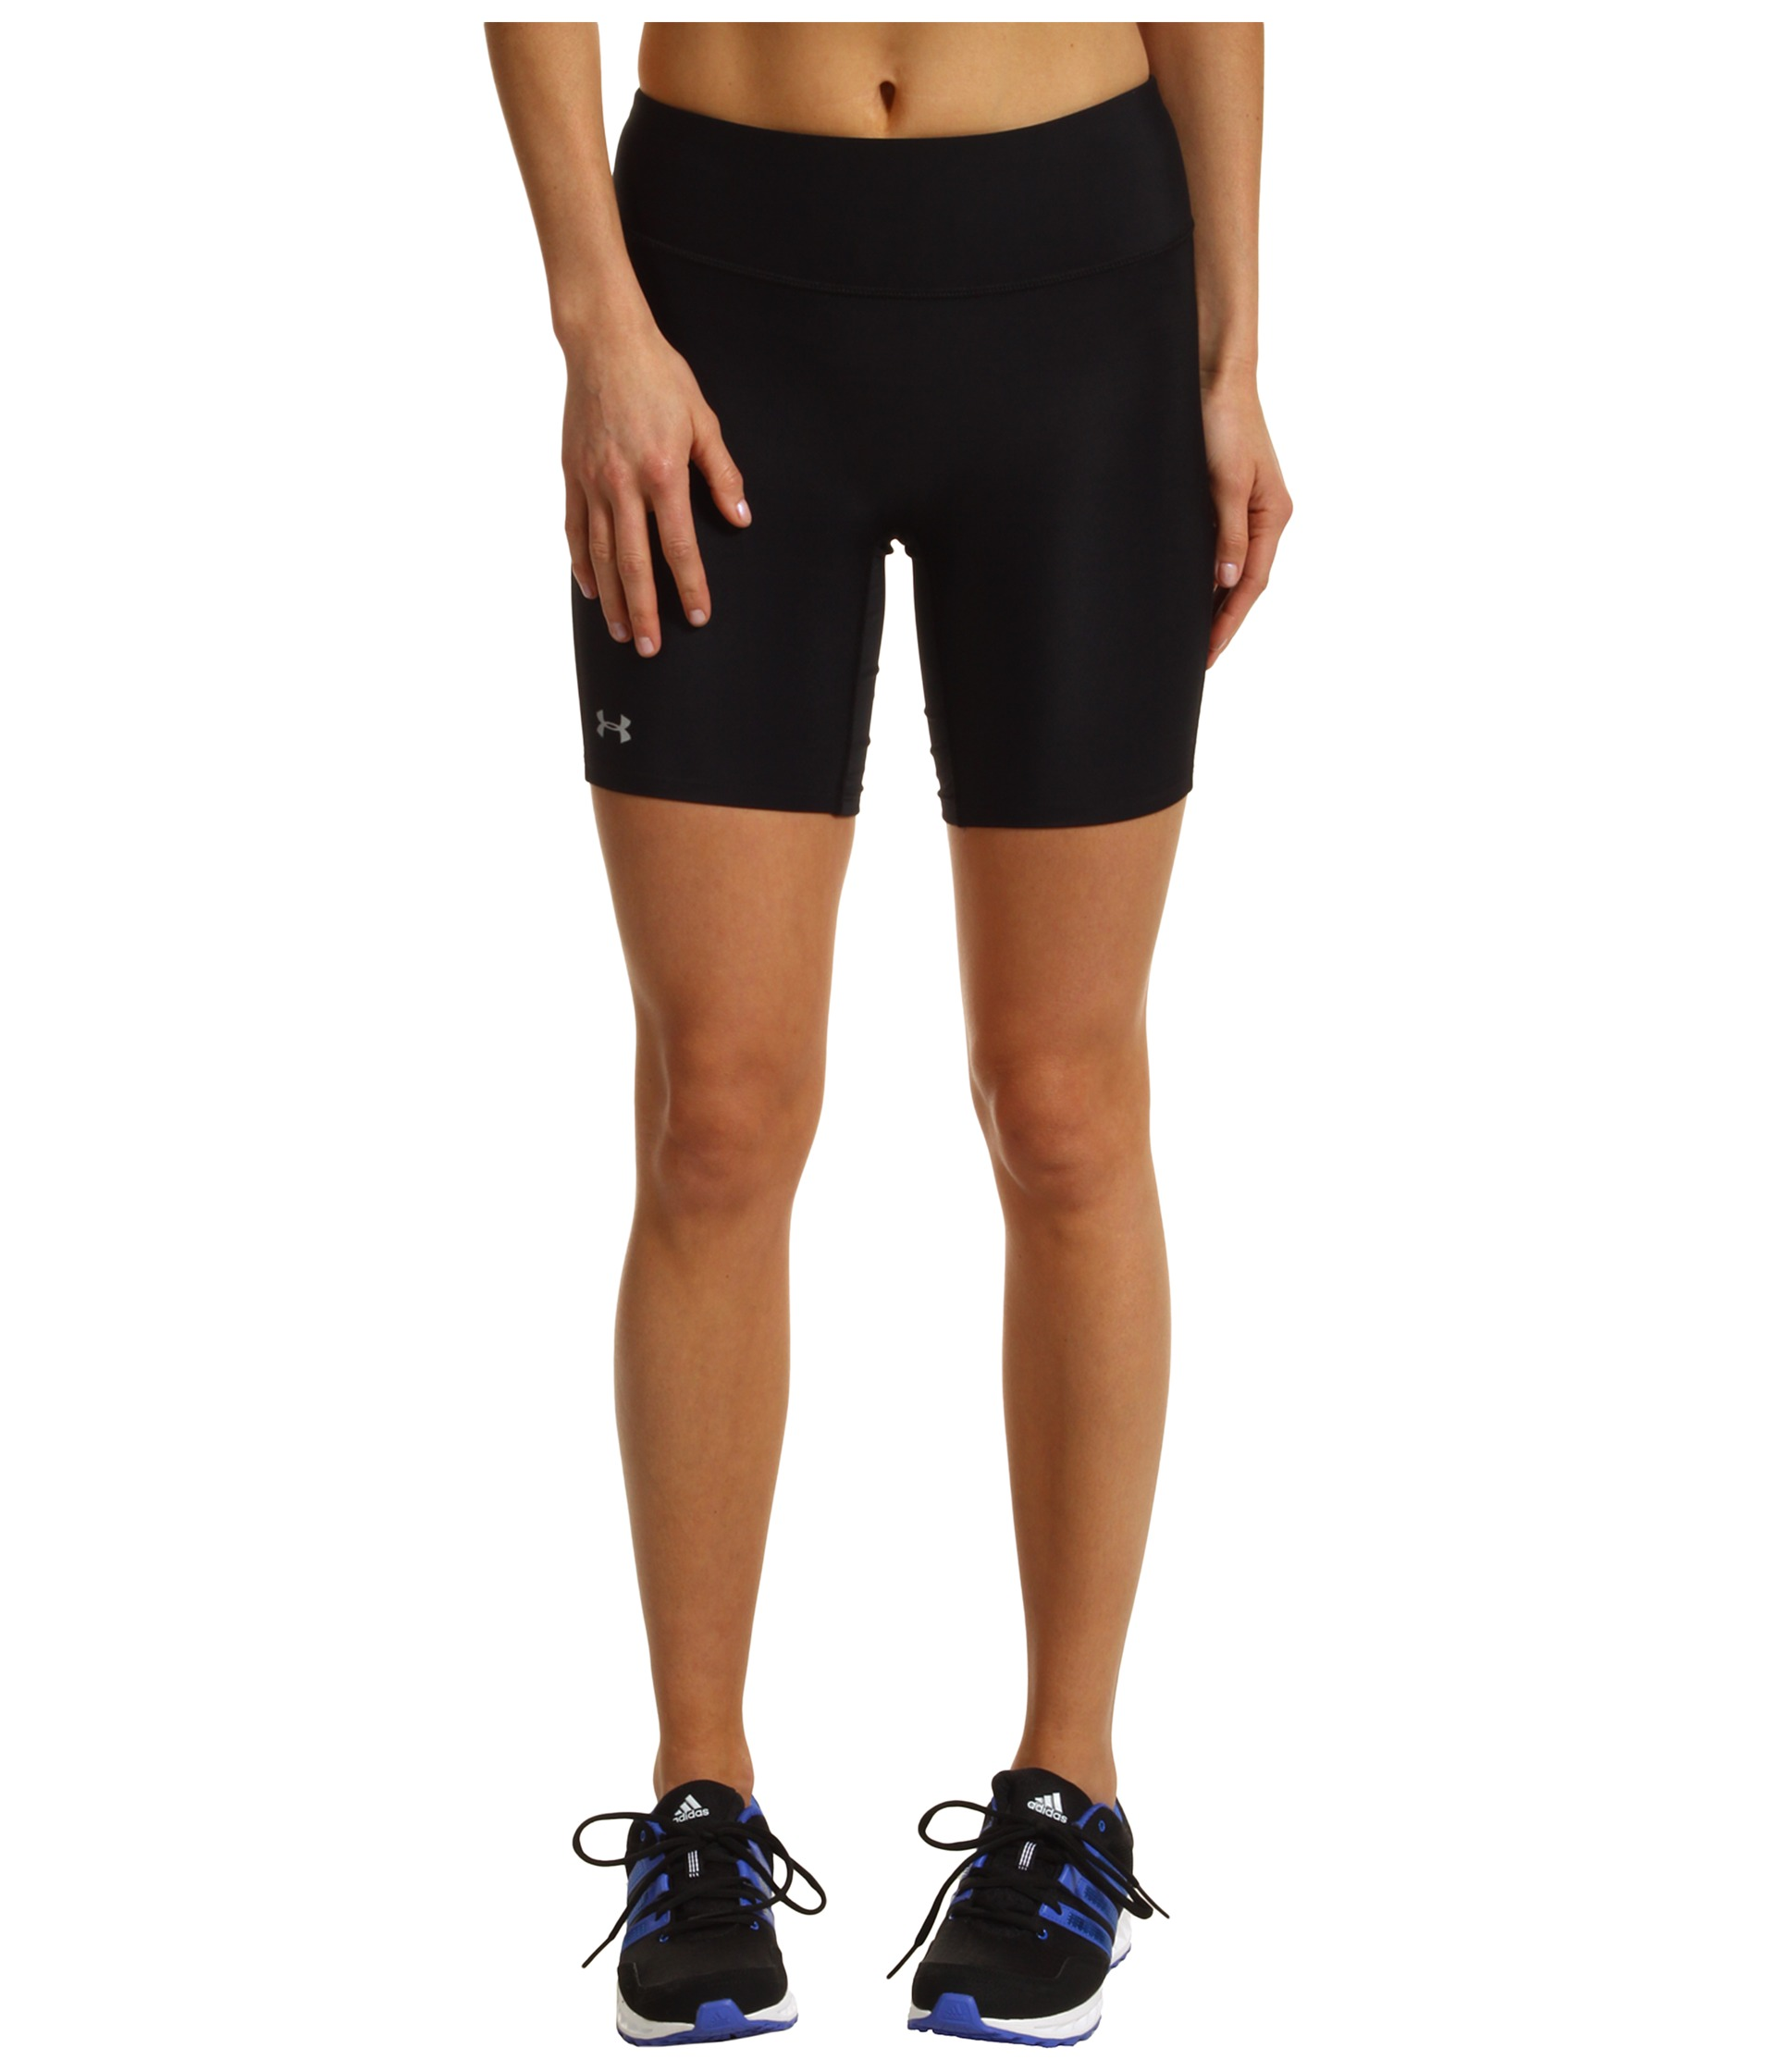 Model E70 Women39s Compression Shorts For Women By Enerskin